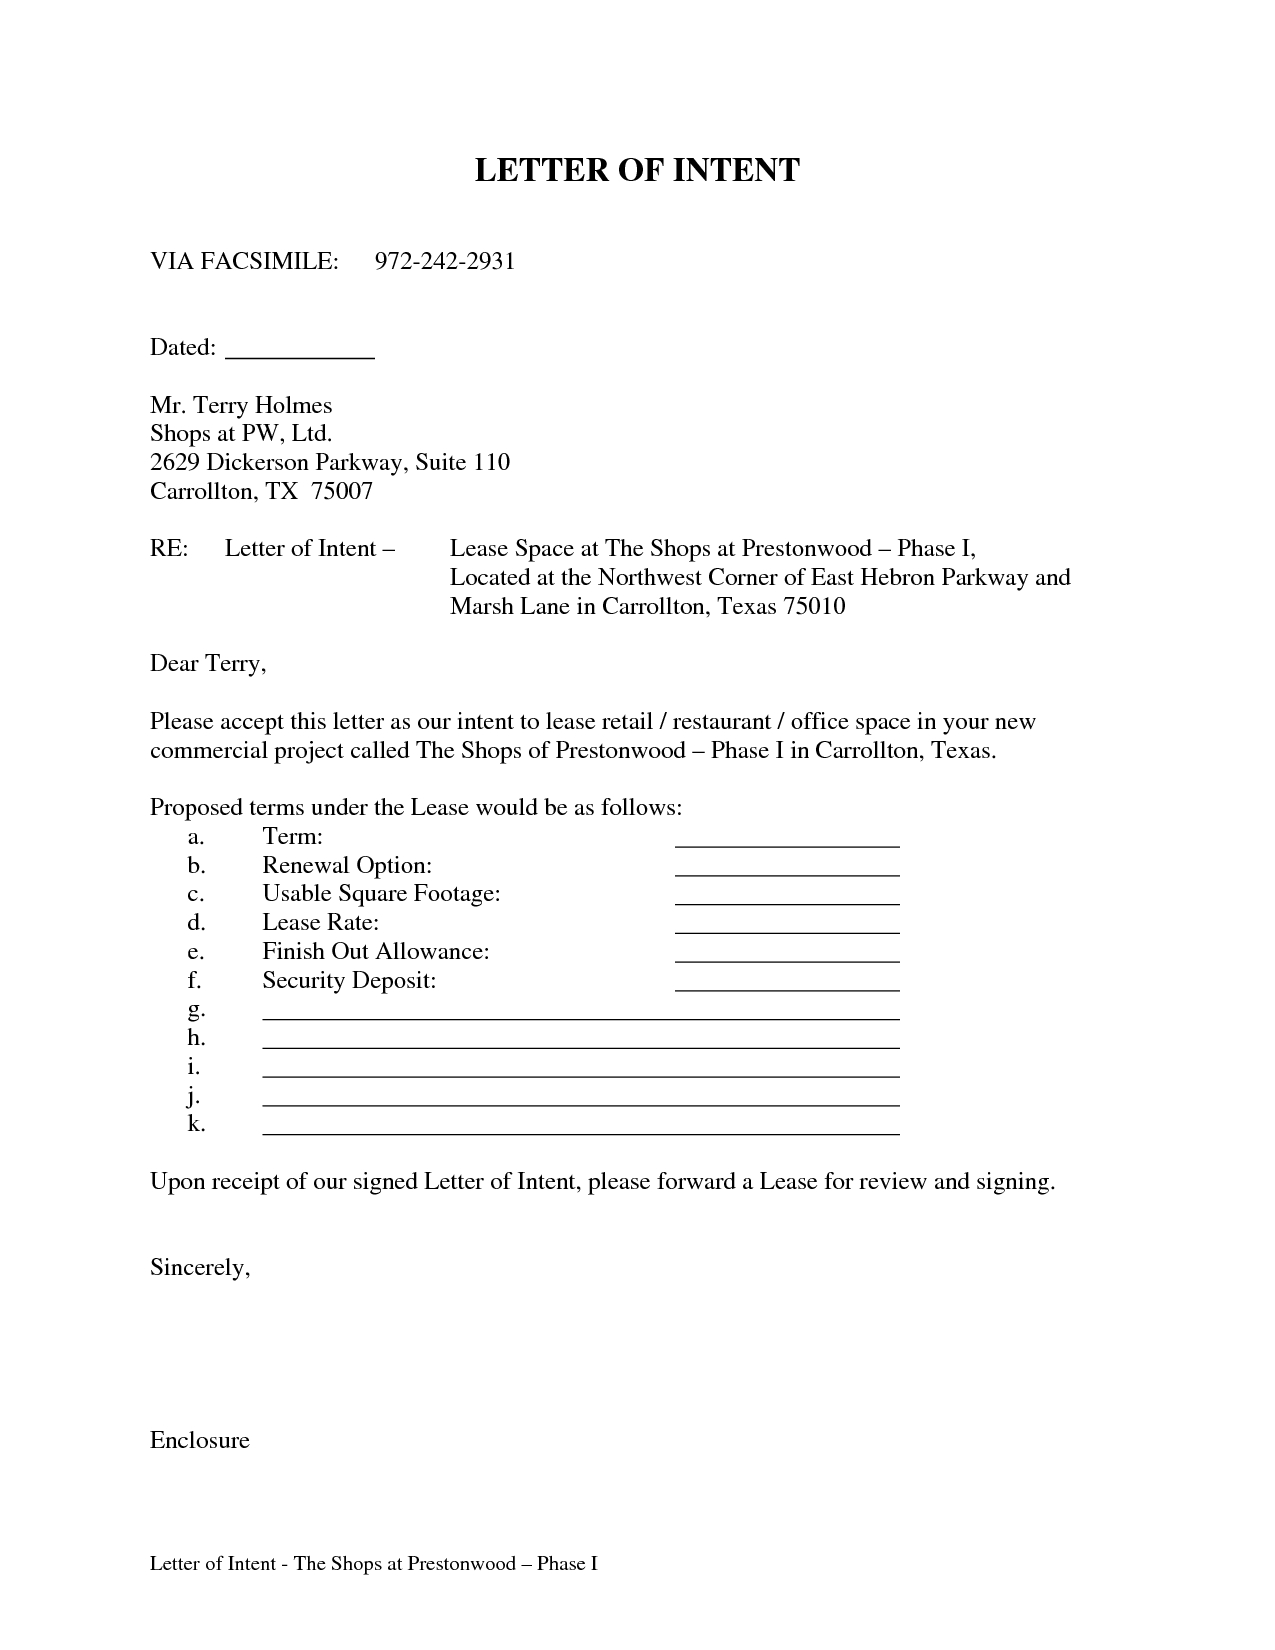 Letter Of Intent to Lease Commercial Property Template - Intent to Lease Template Tire Driveeasy Co Letter Real Estate